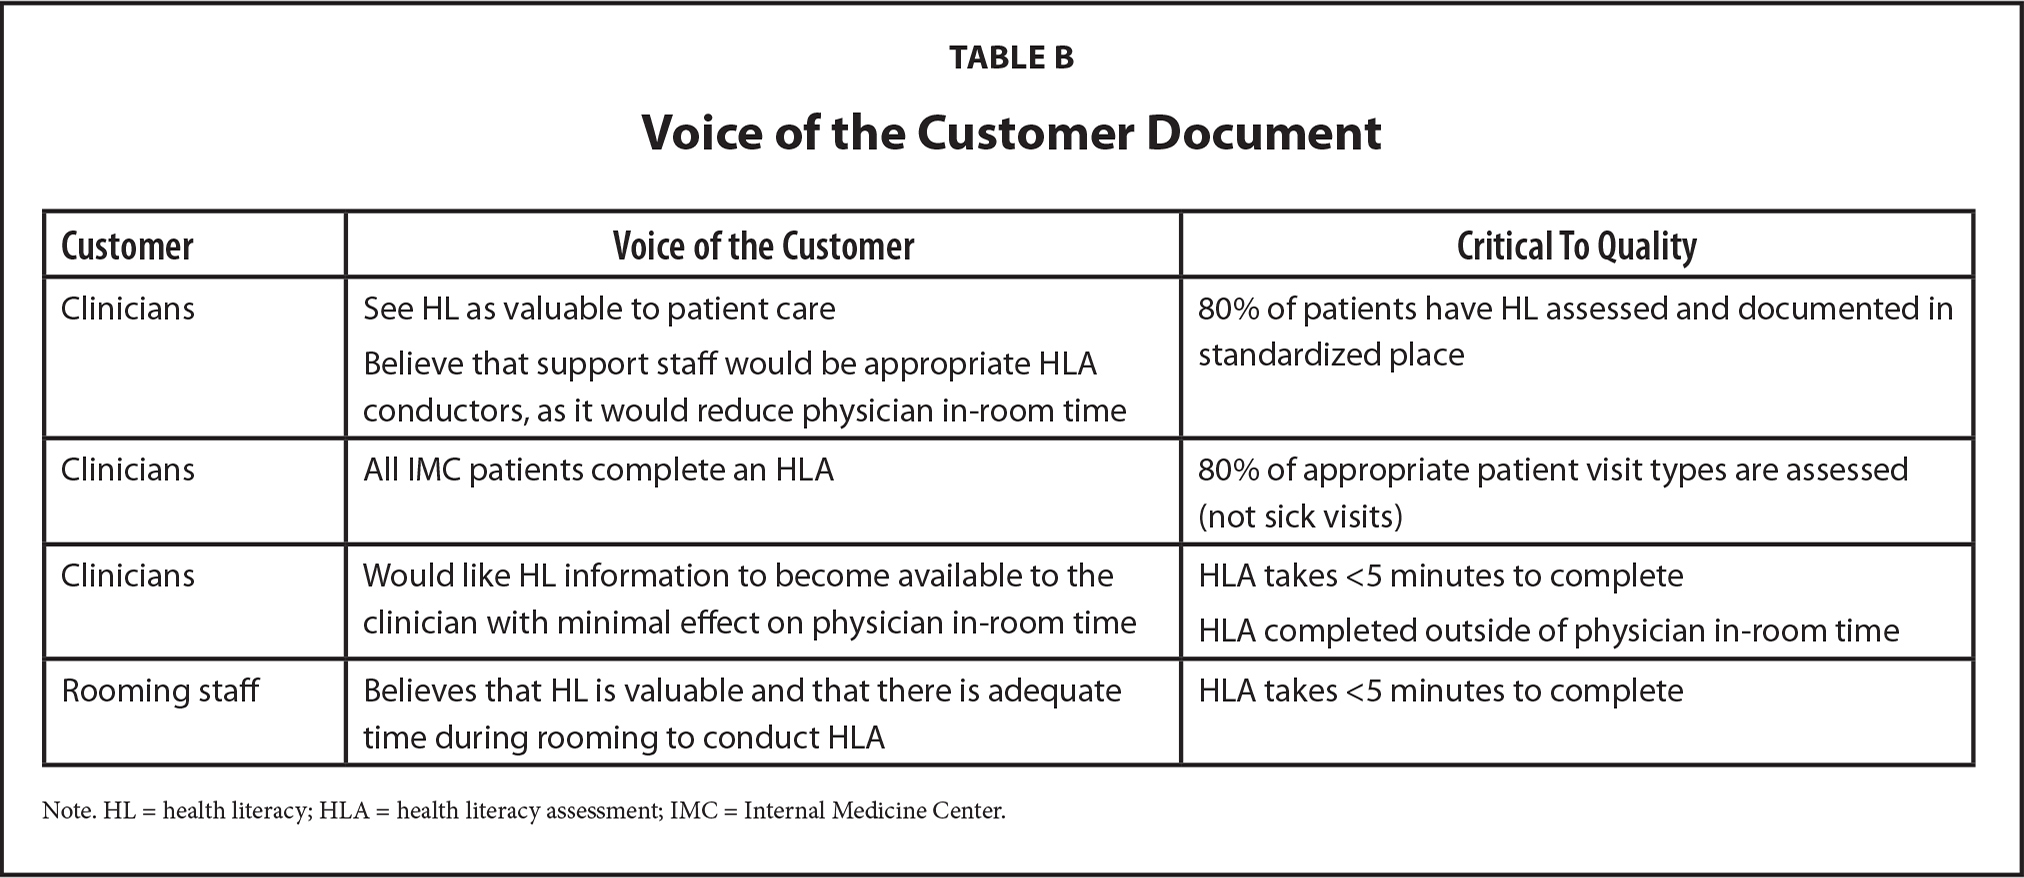 Voice of the Customer Document